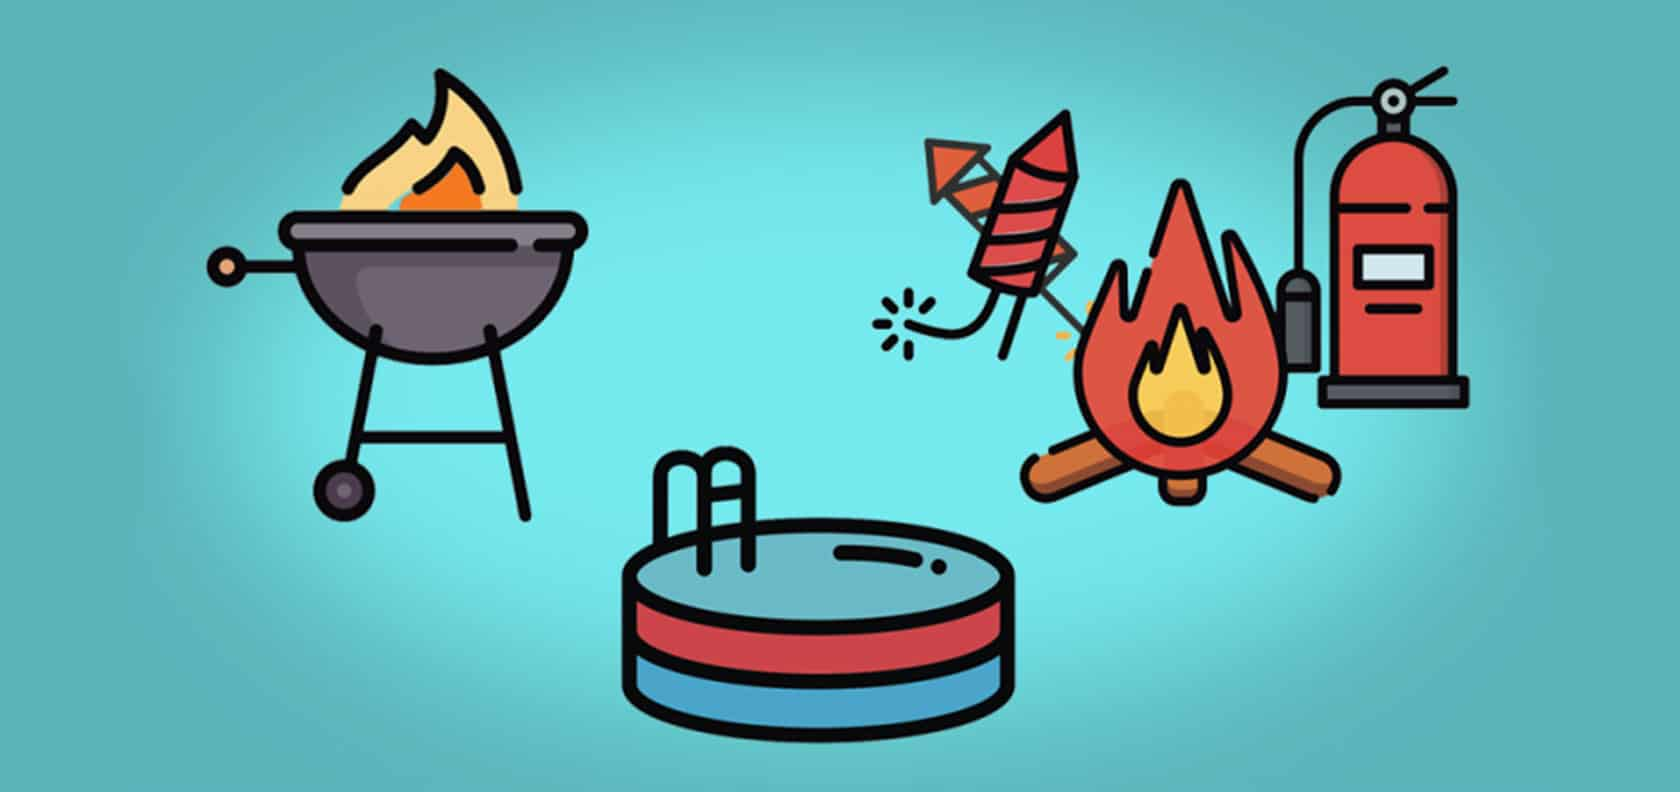 Illustration of safety tips for the summer: barbecue, swimming pool, fireworks, campfire, fire extinguisher.